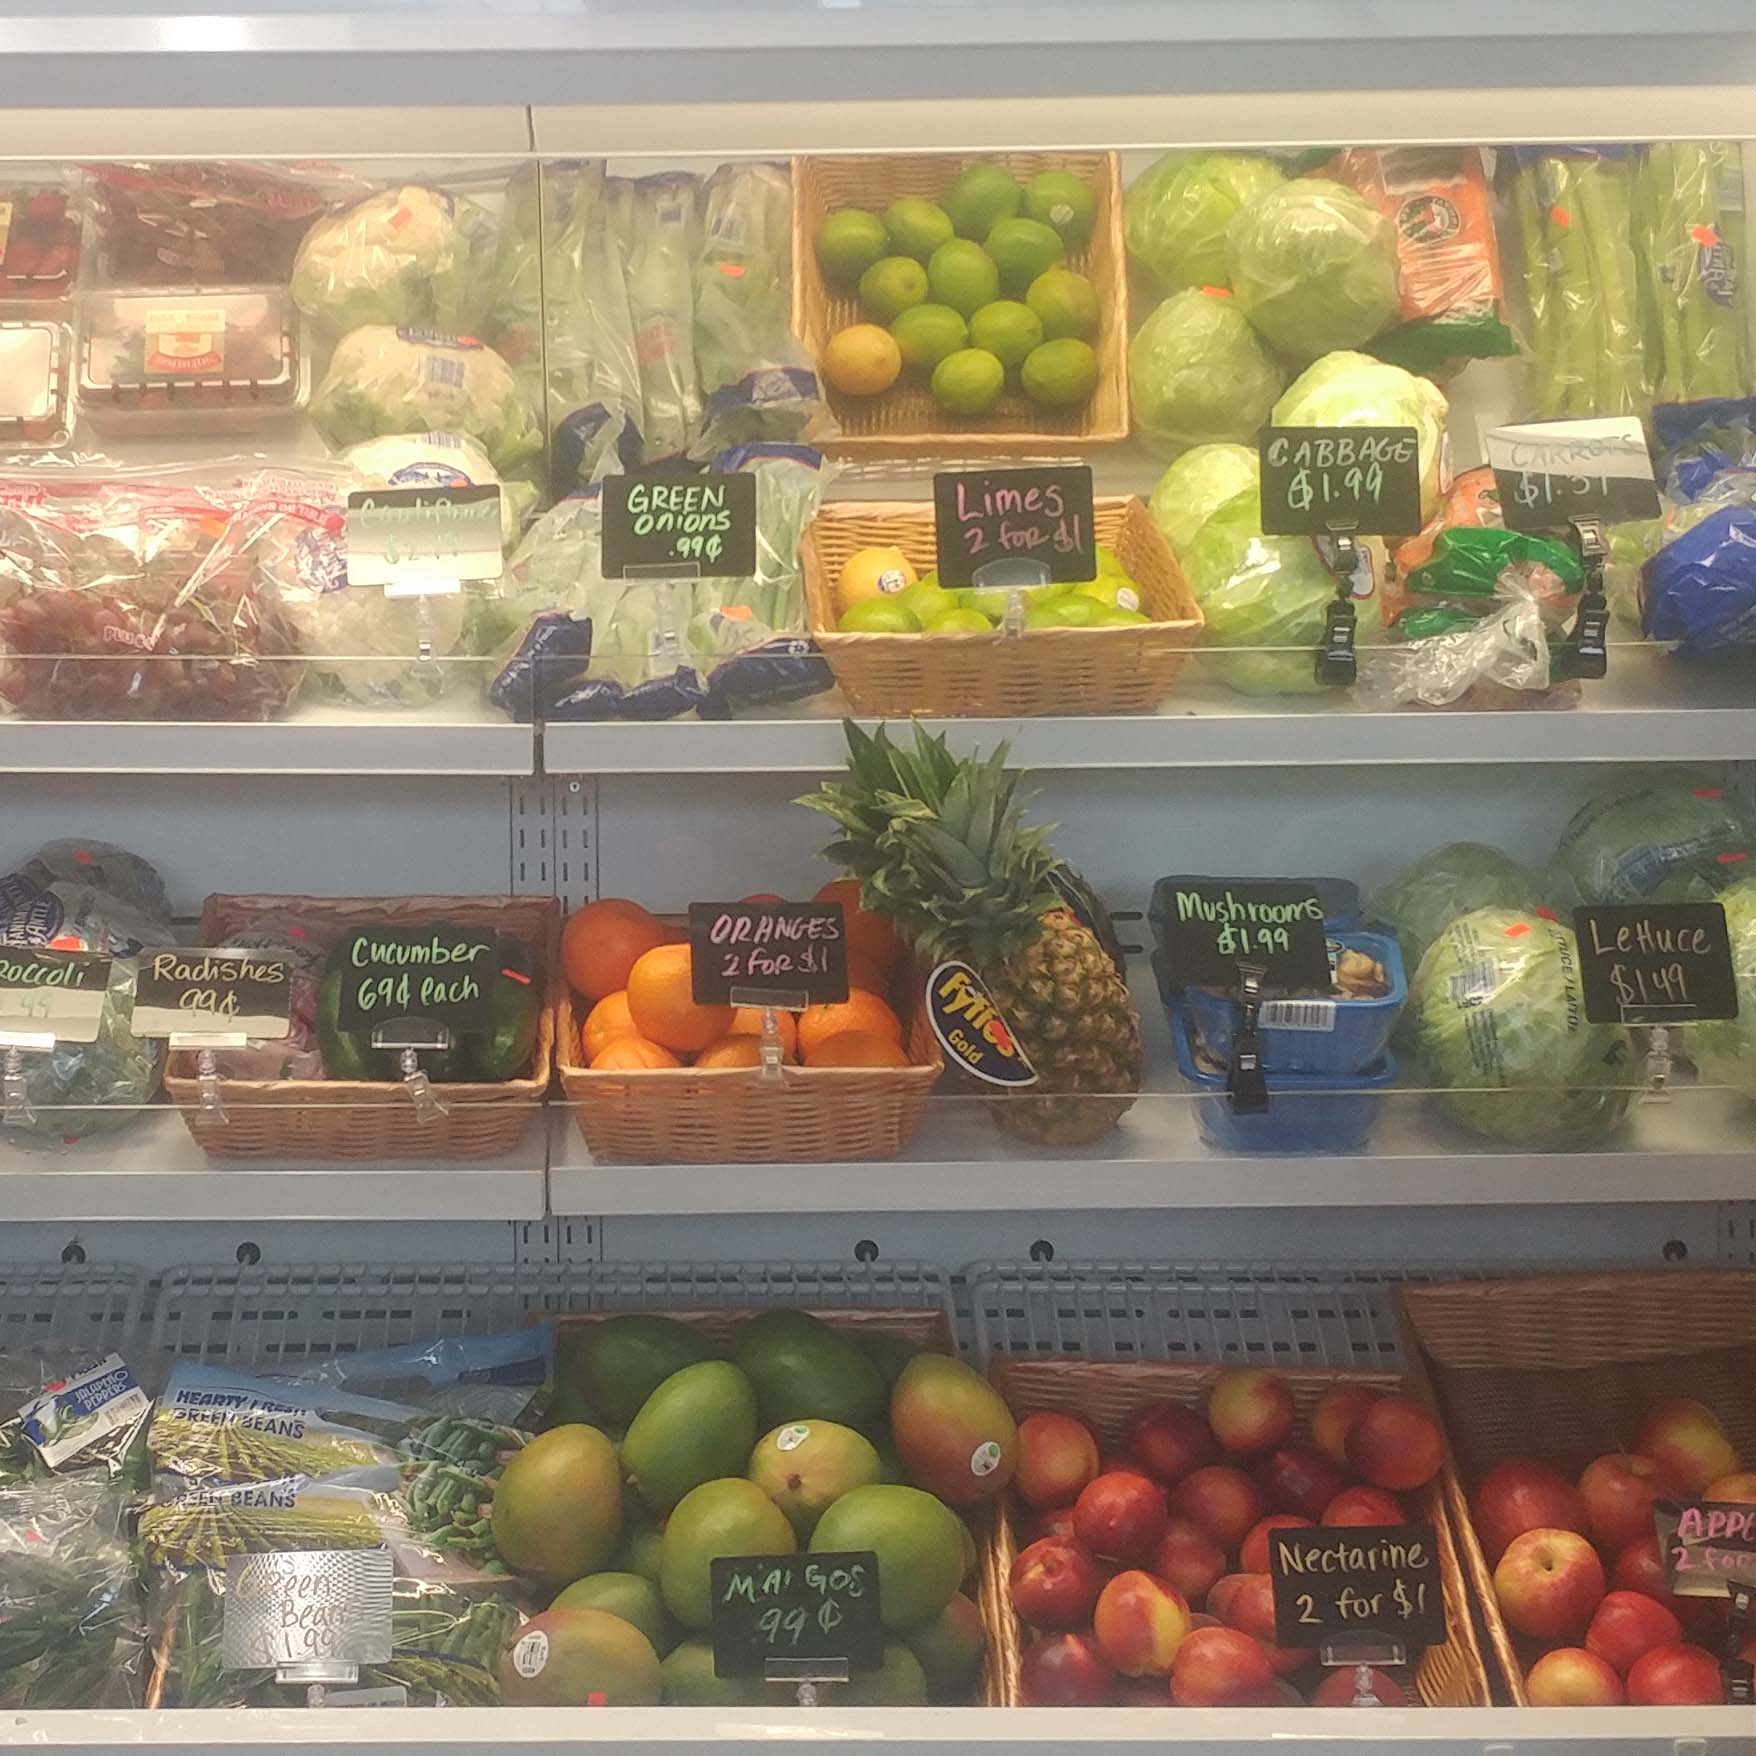 With the help of Be Healthy Berrien, a collective impact initiative supported by United Way, the Covert Citgo is undergoing a healthy corner store transformation. Fresh fruits and vegetables, along with other healthy items, have been added to the corner store's inventory.